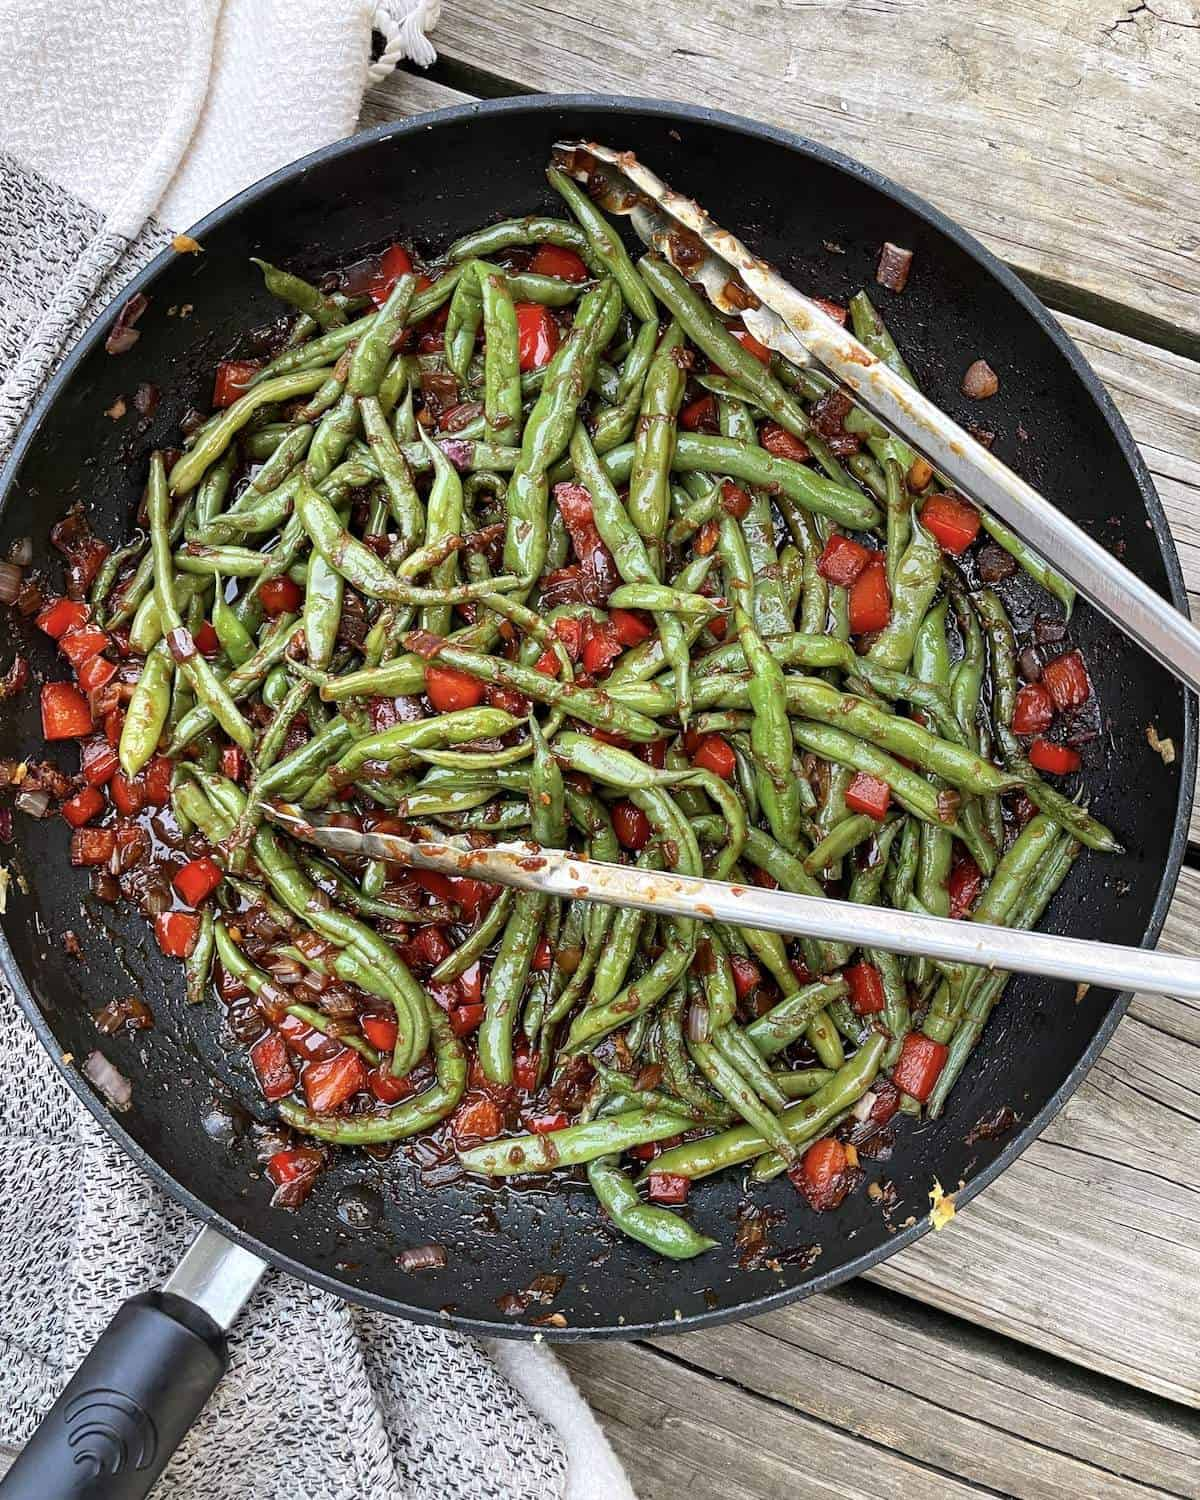 A frying pan of Peruvian green beans with bell pepper and onions and a pair of tongs.